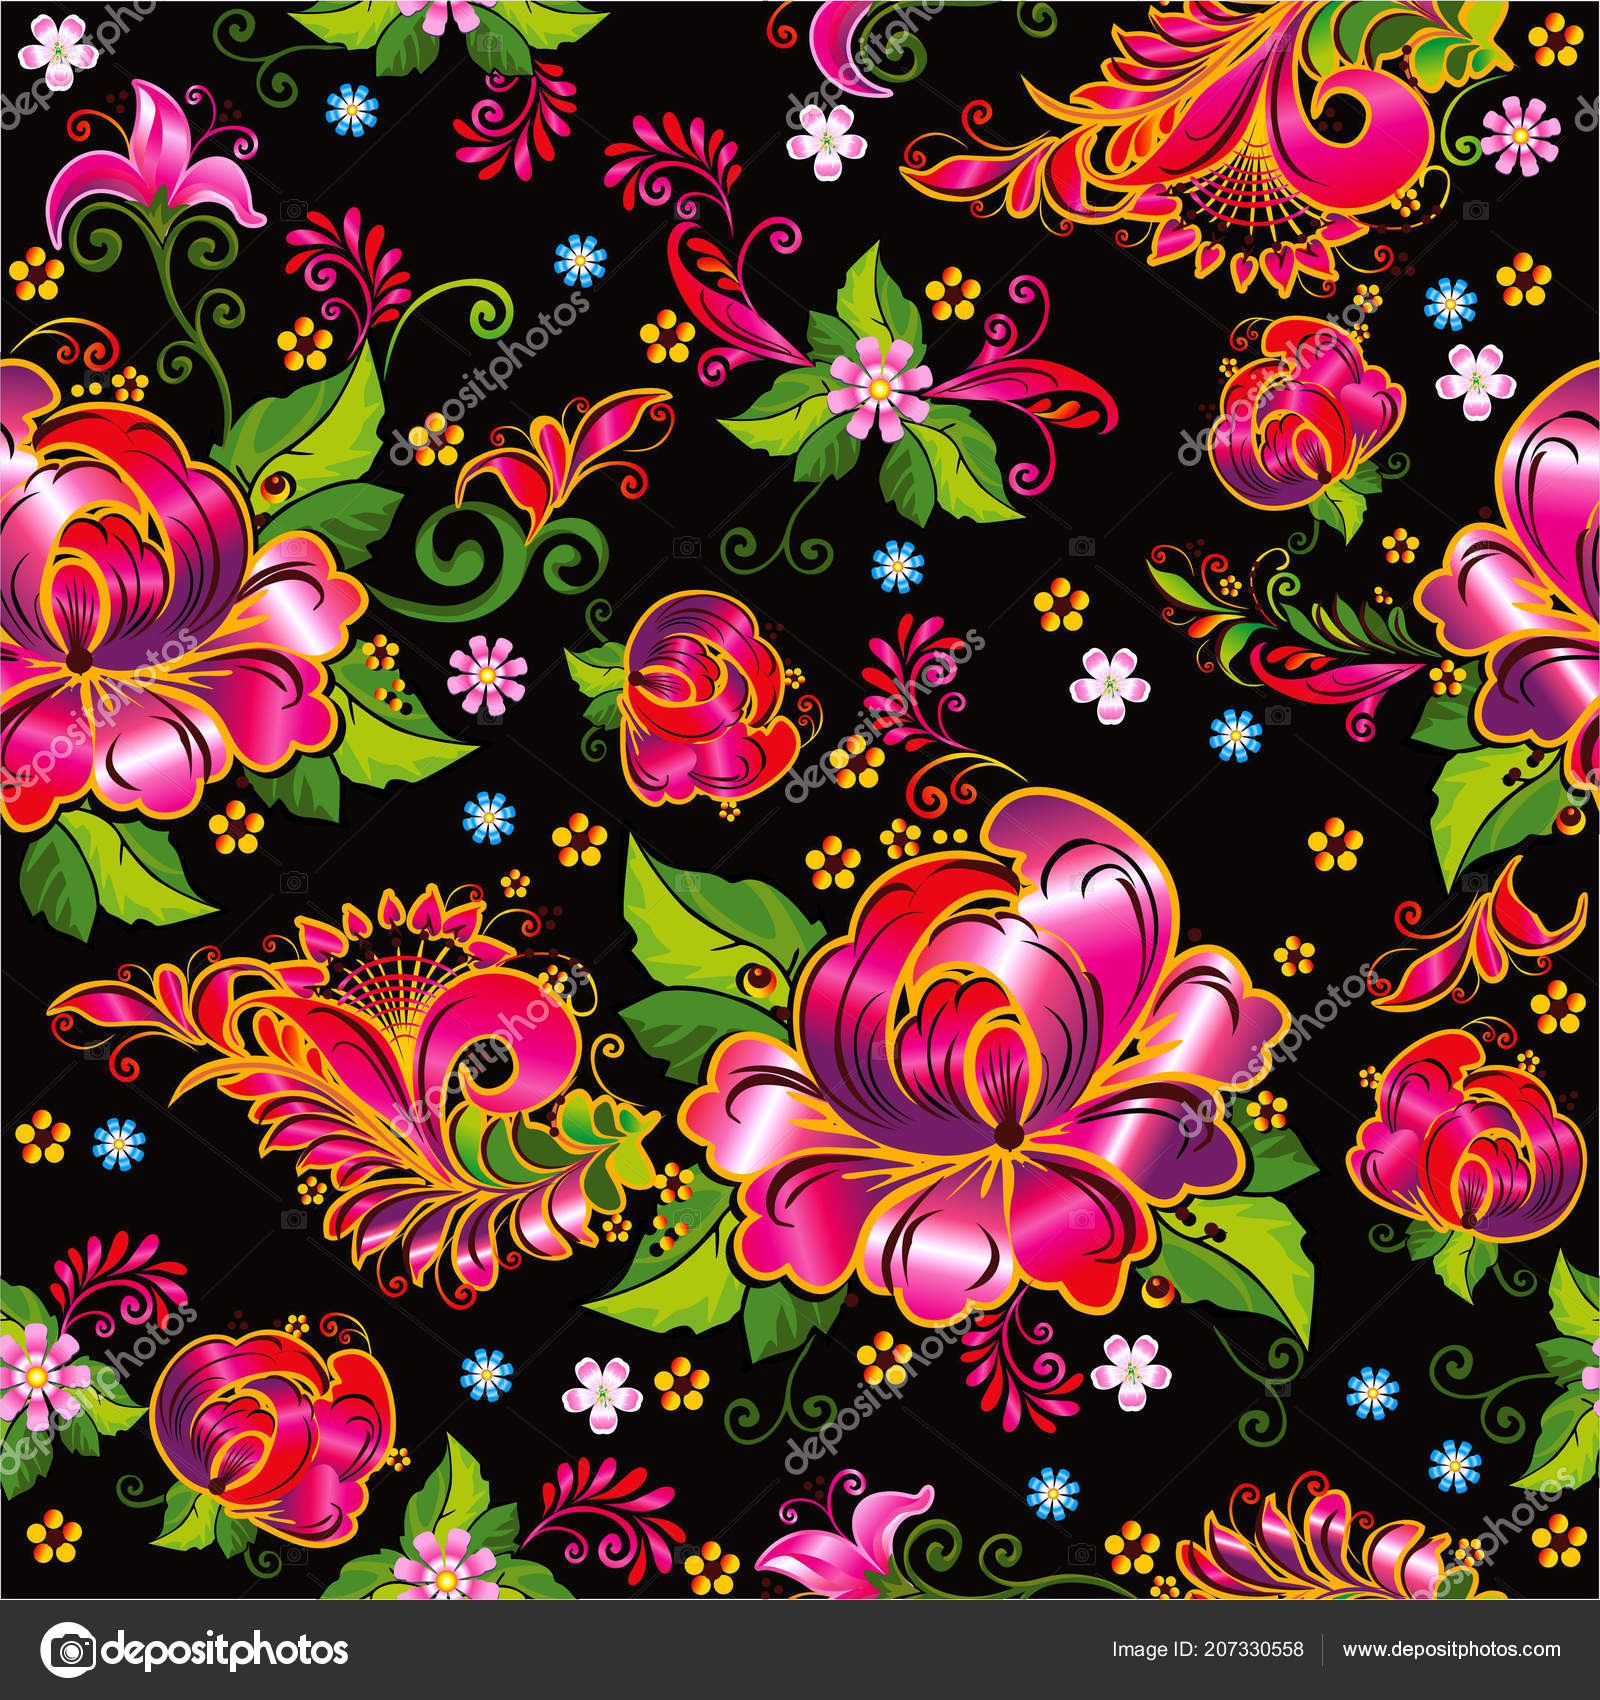 Beautiful Flowers Printing Fabric Paper Creating Fashion Design Interiors Seamless Stock Vector C Veta Kz 207330558